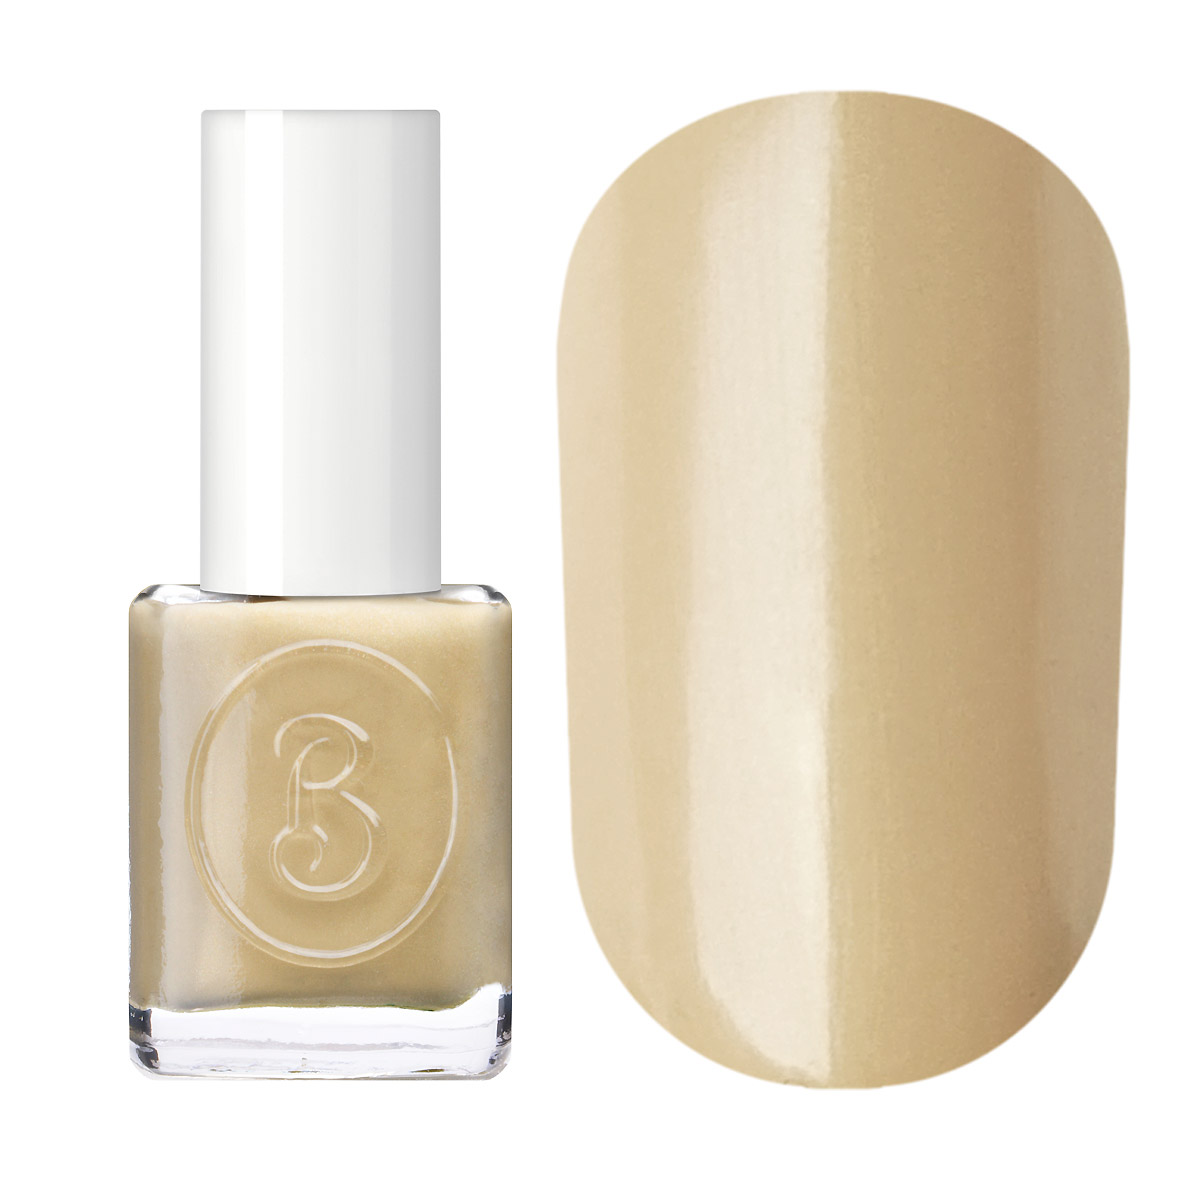 Berenice Oxygen Nail Polish / 48 creme brulee